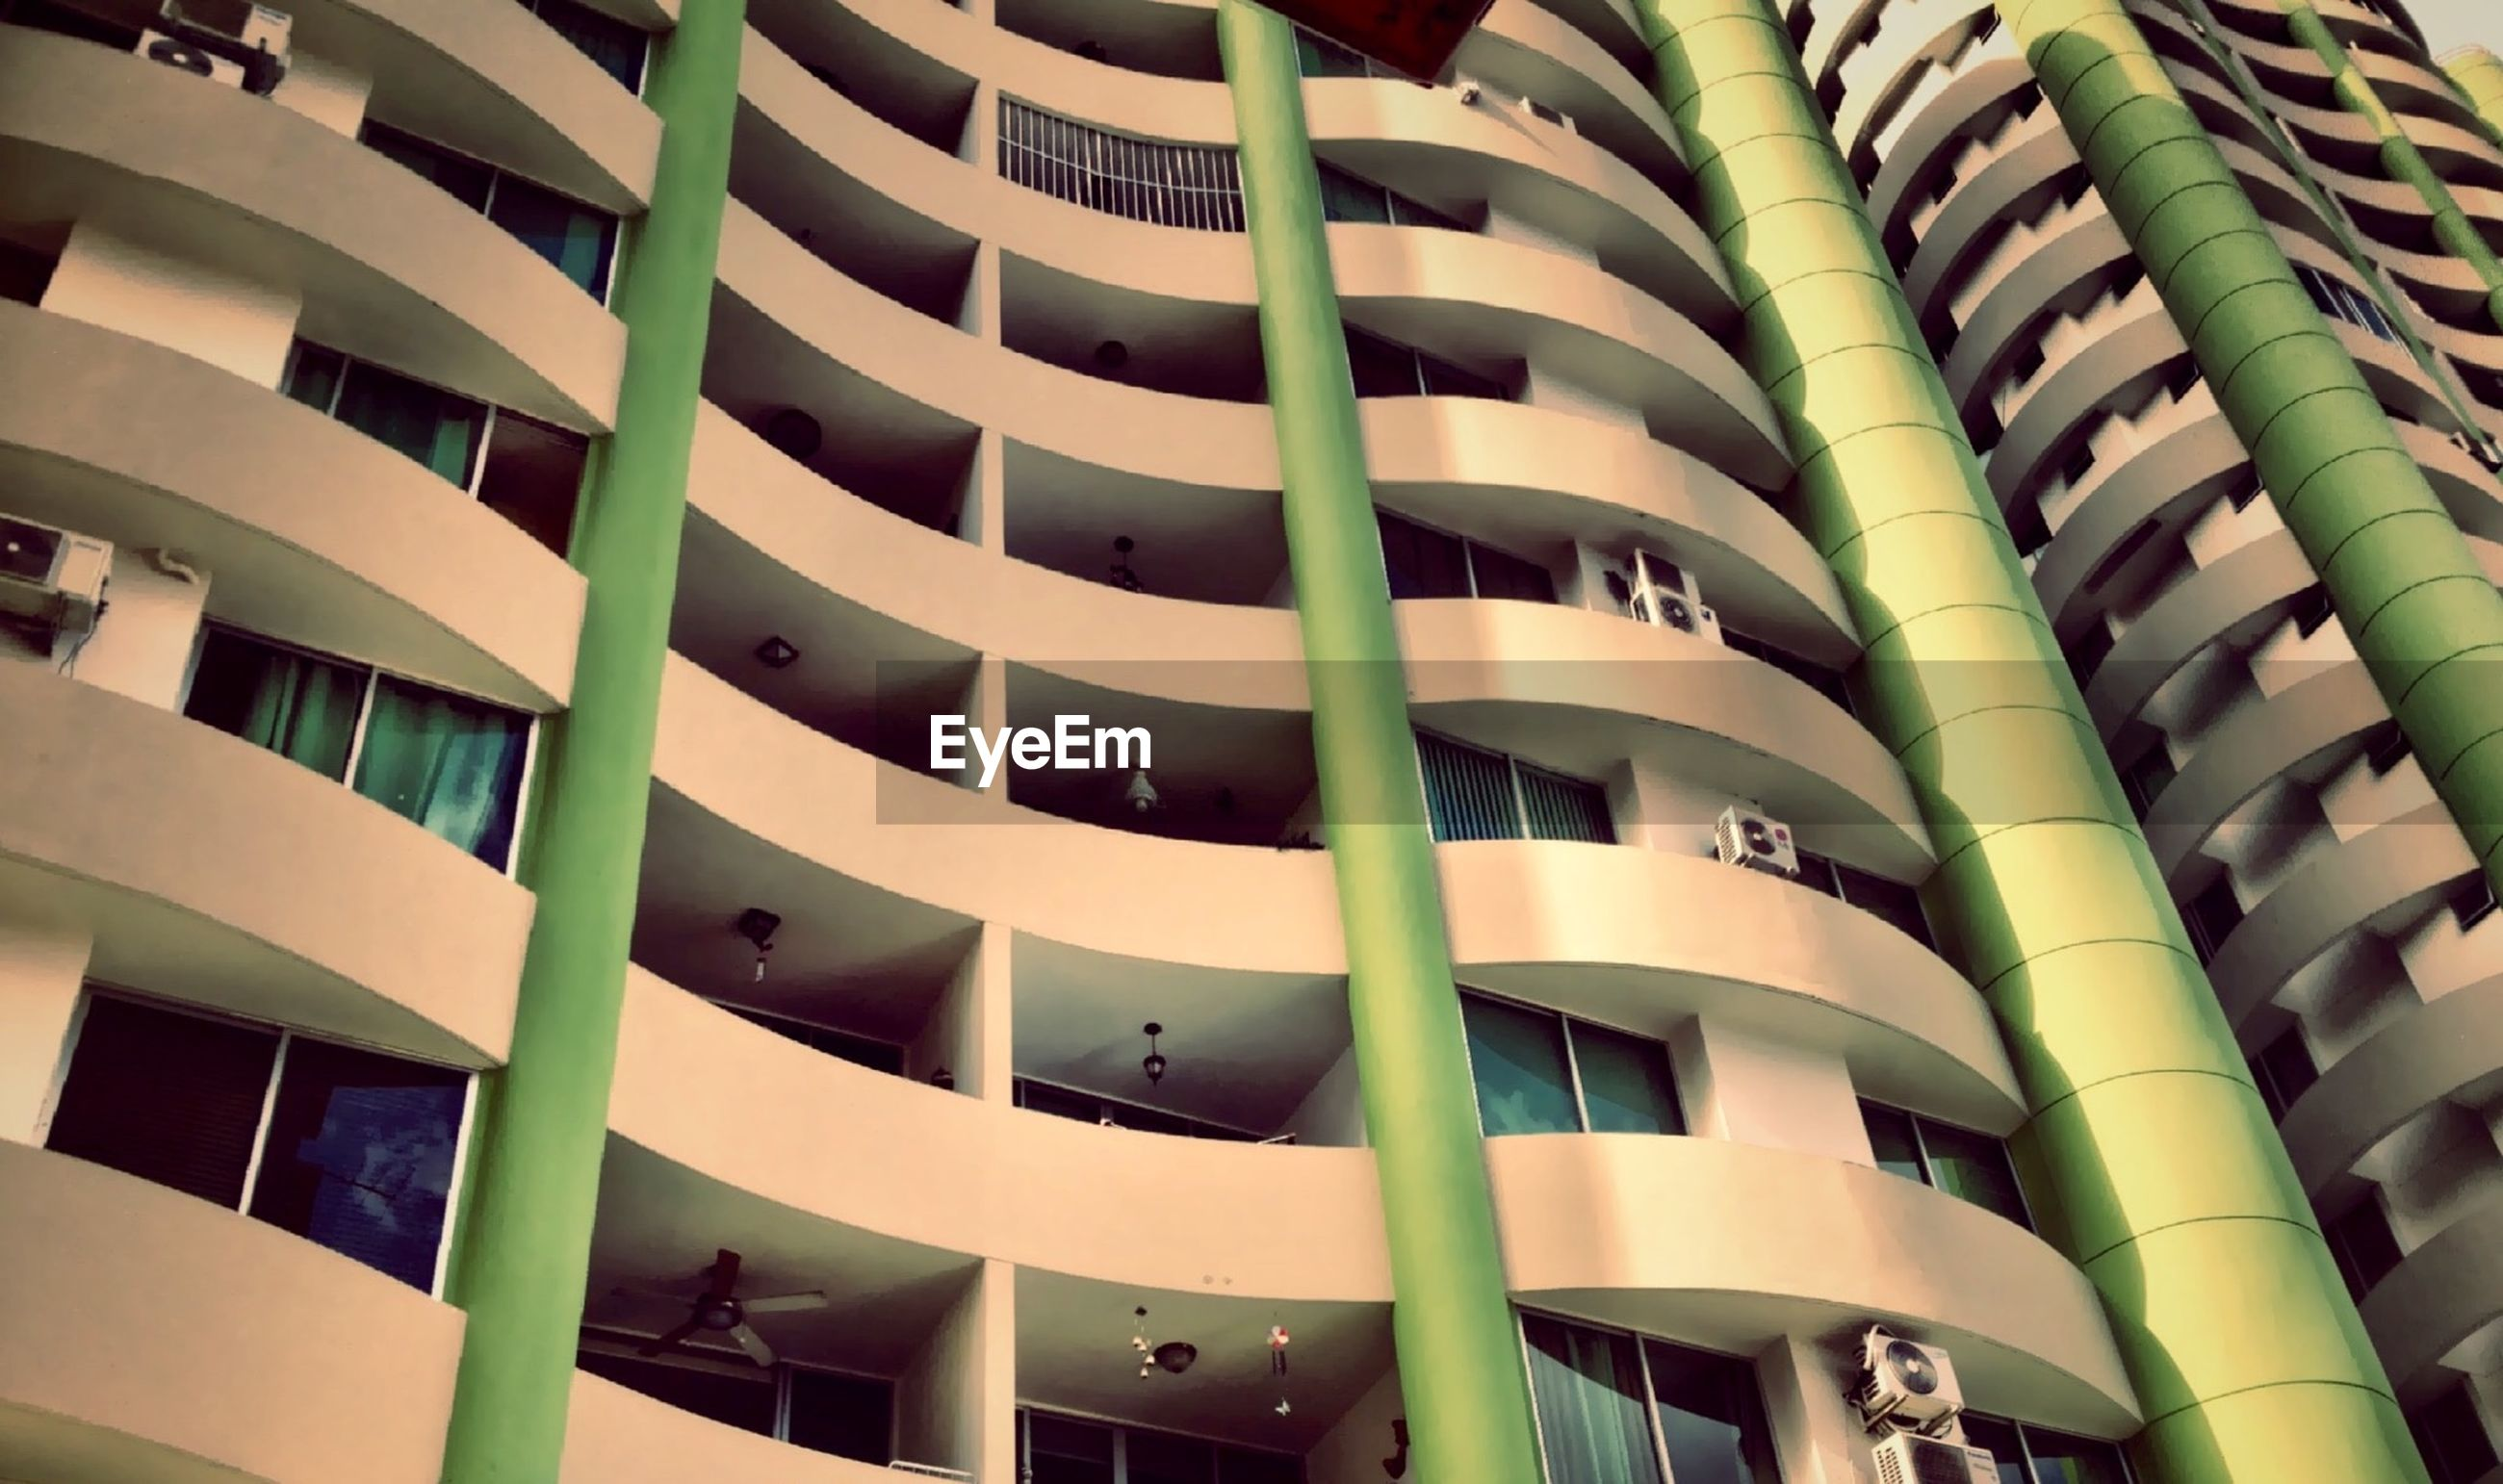 architecture, building exterior, built structure, low angle view, modern, building, city, window, office building, repetition, residential building, balcony, in a row, apartment, tall - high, full frame, day, no people, outdoors, backgrounds